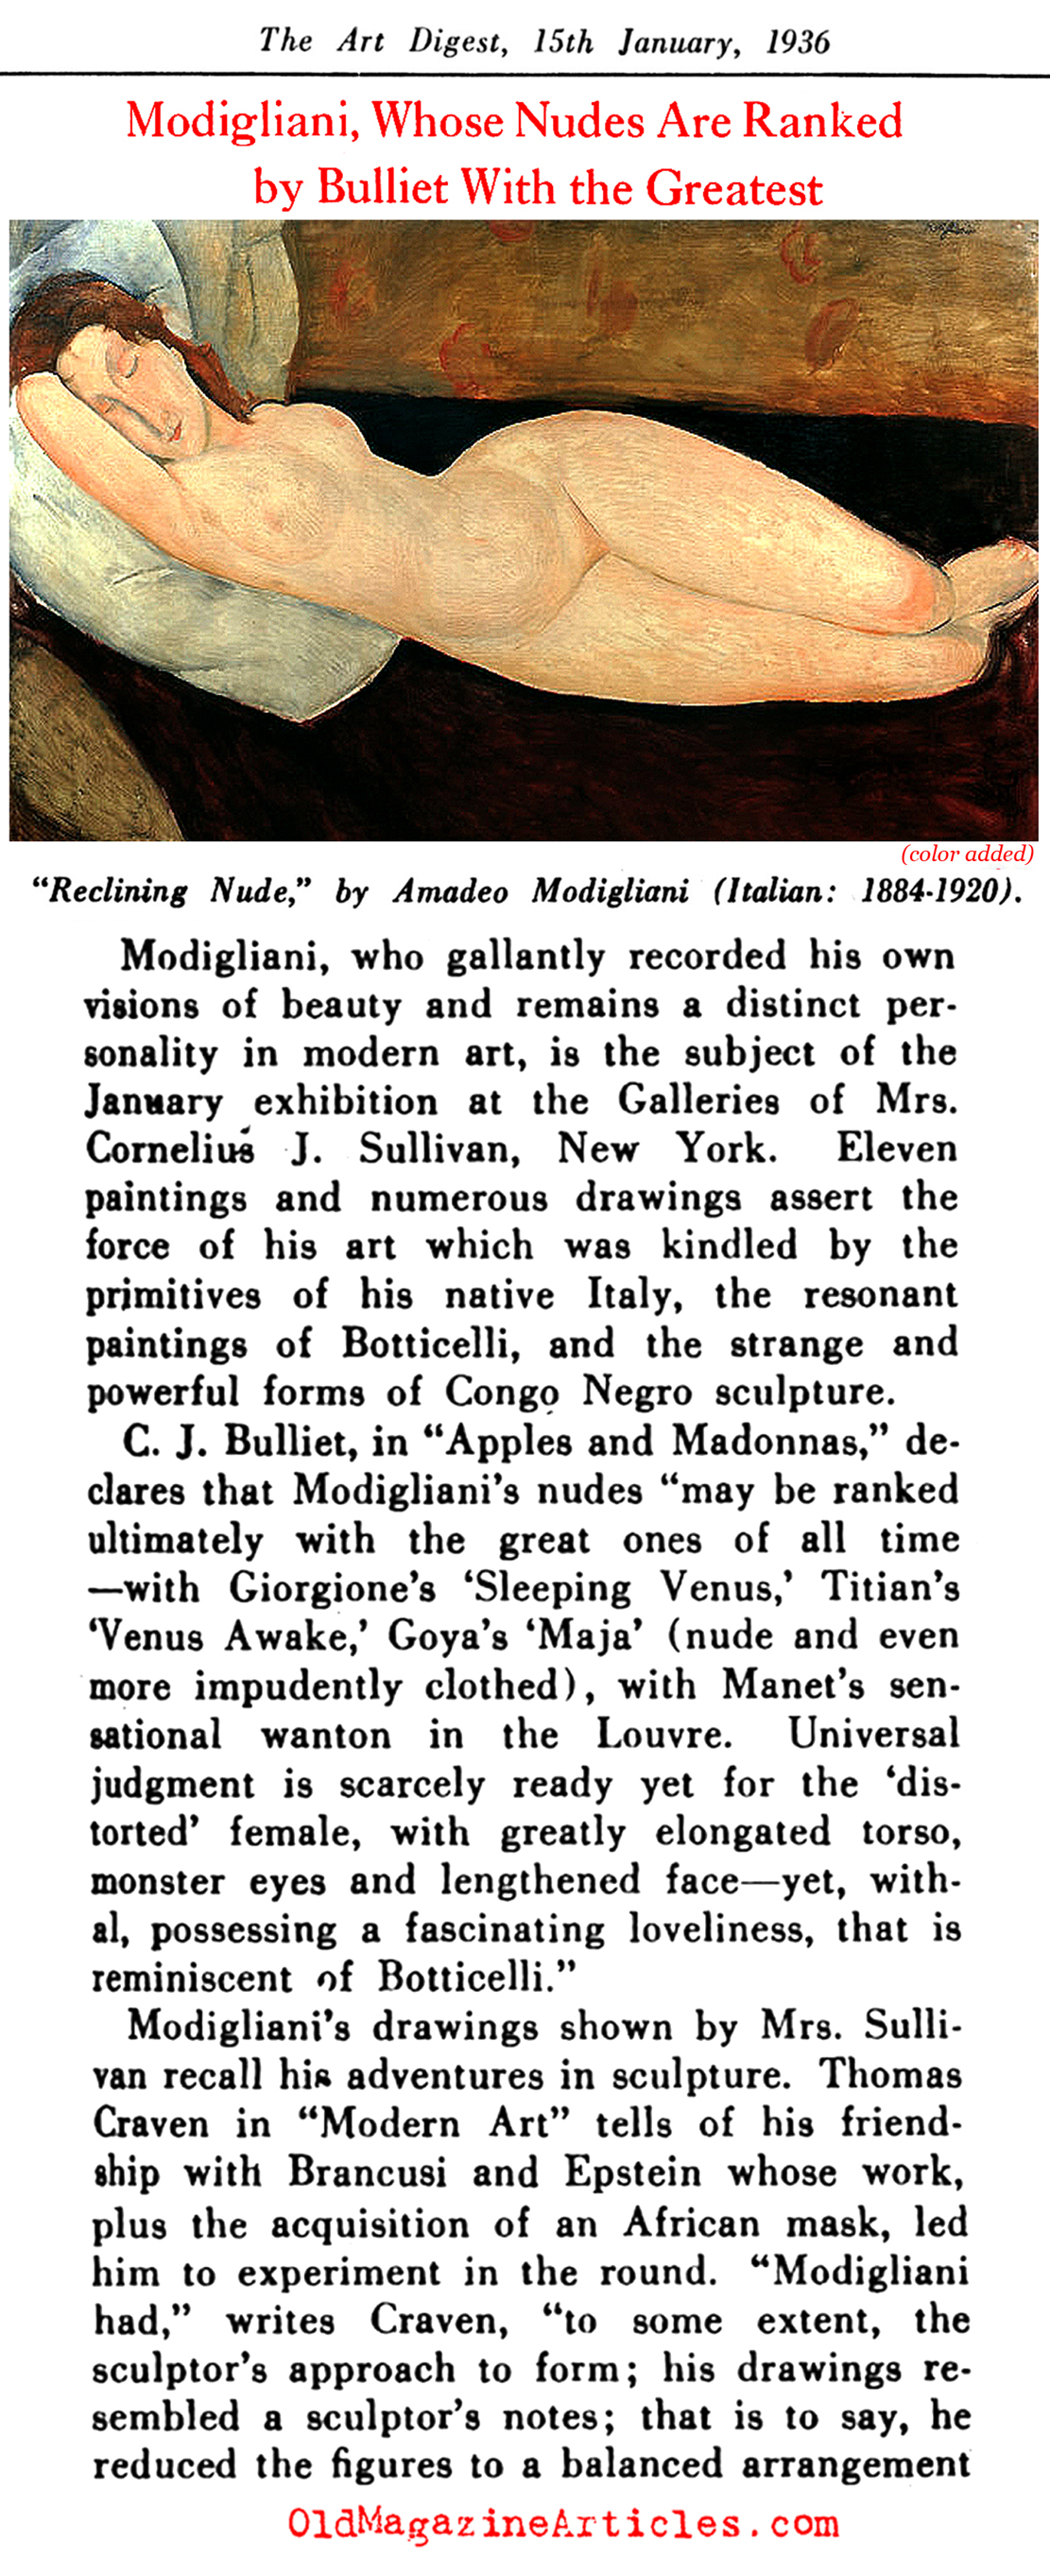 Modigliani: Appreciated at Last (Art Digest, 1936)